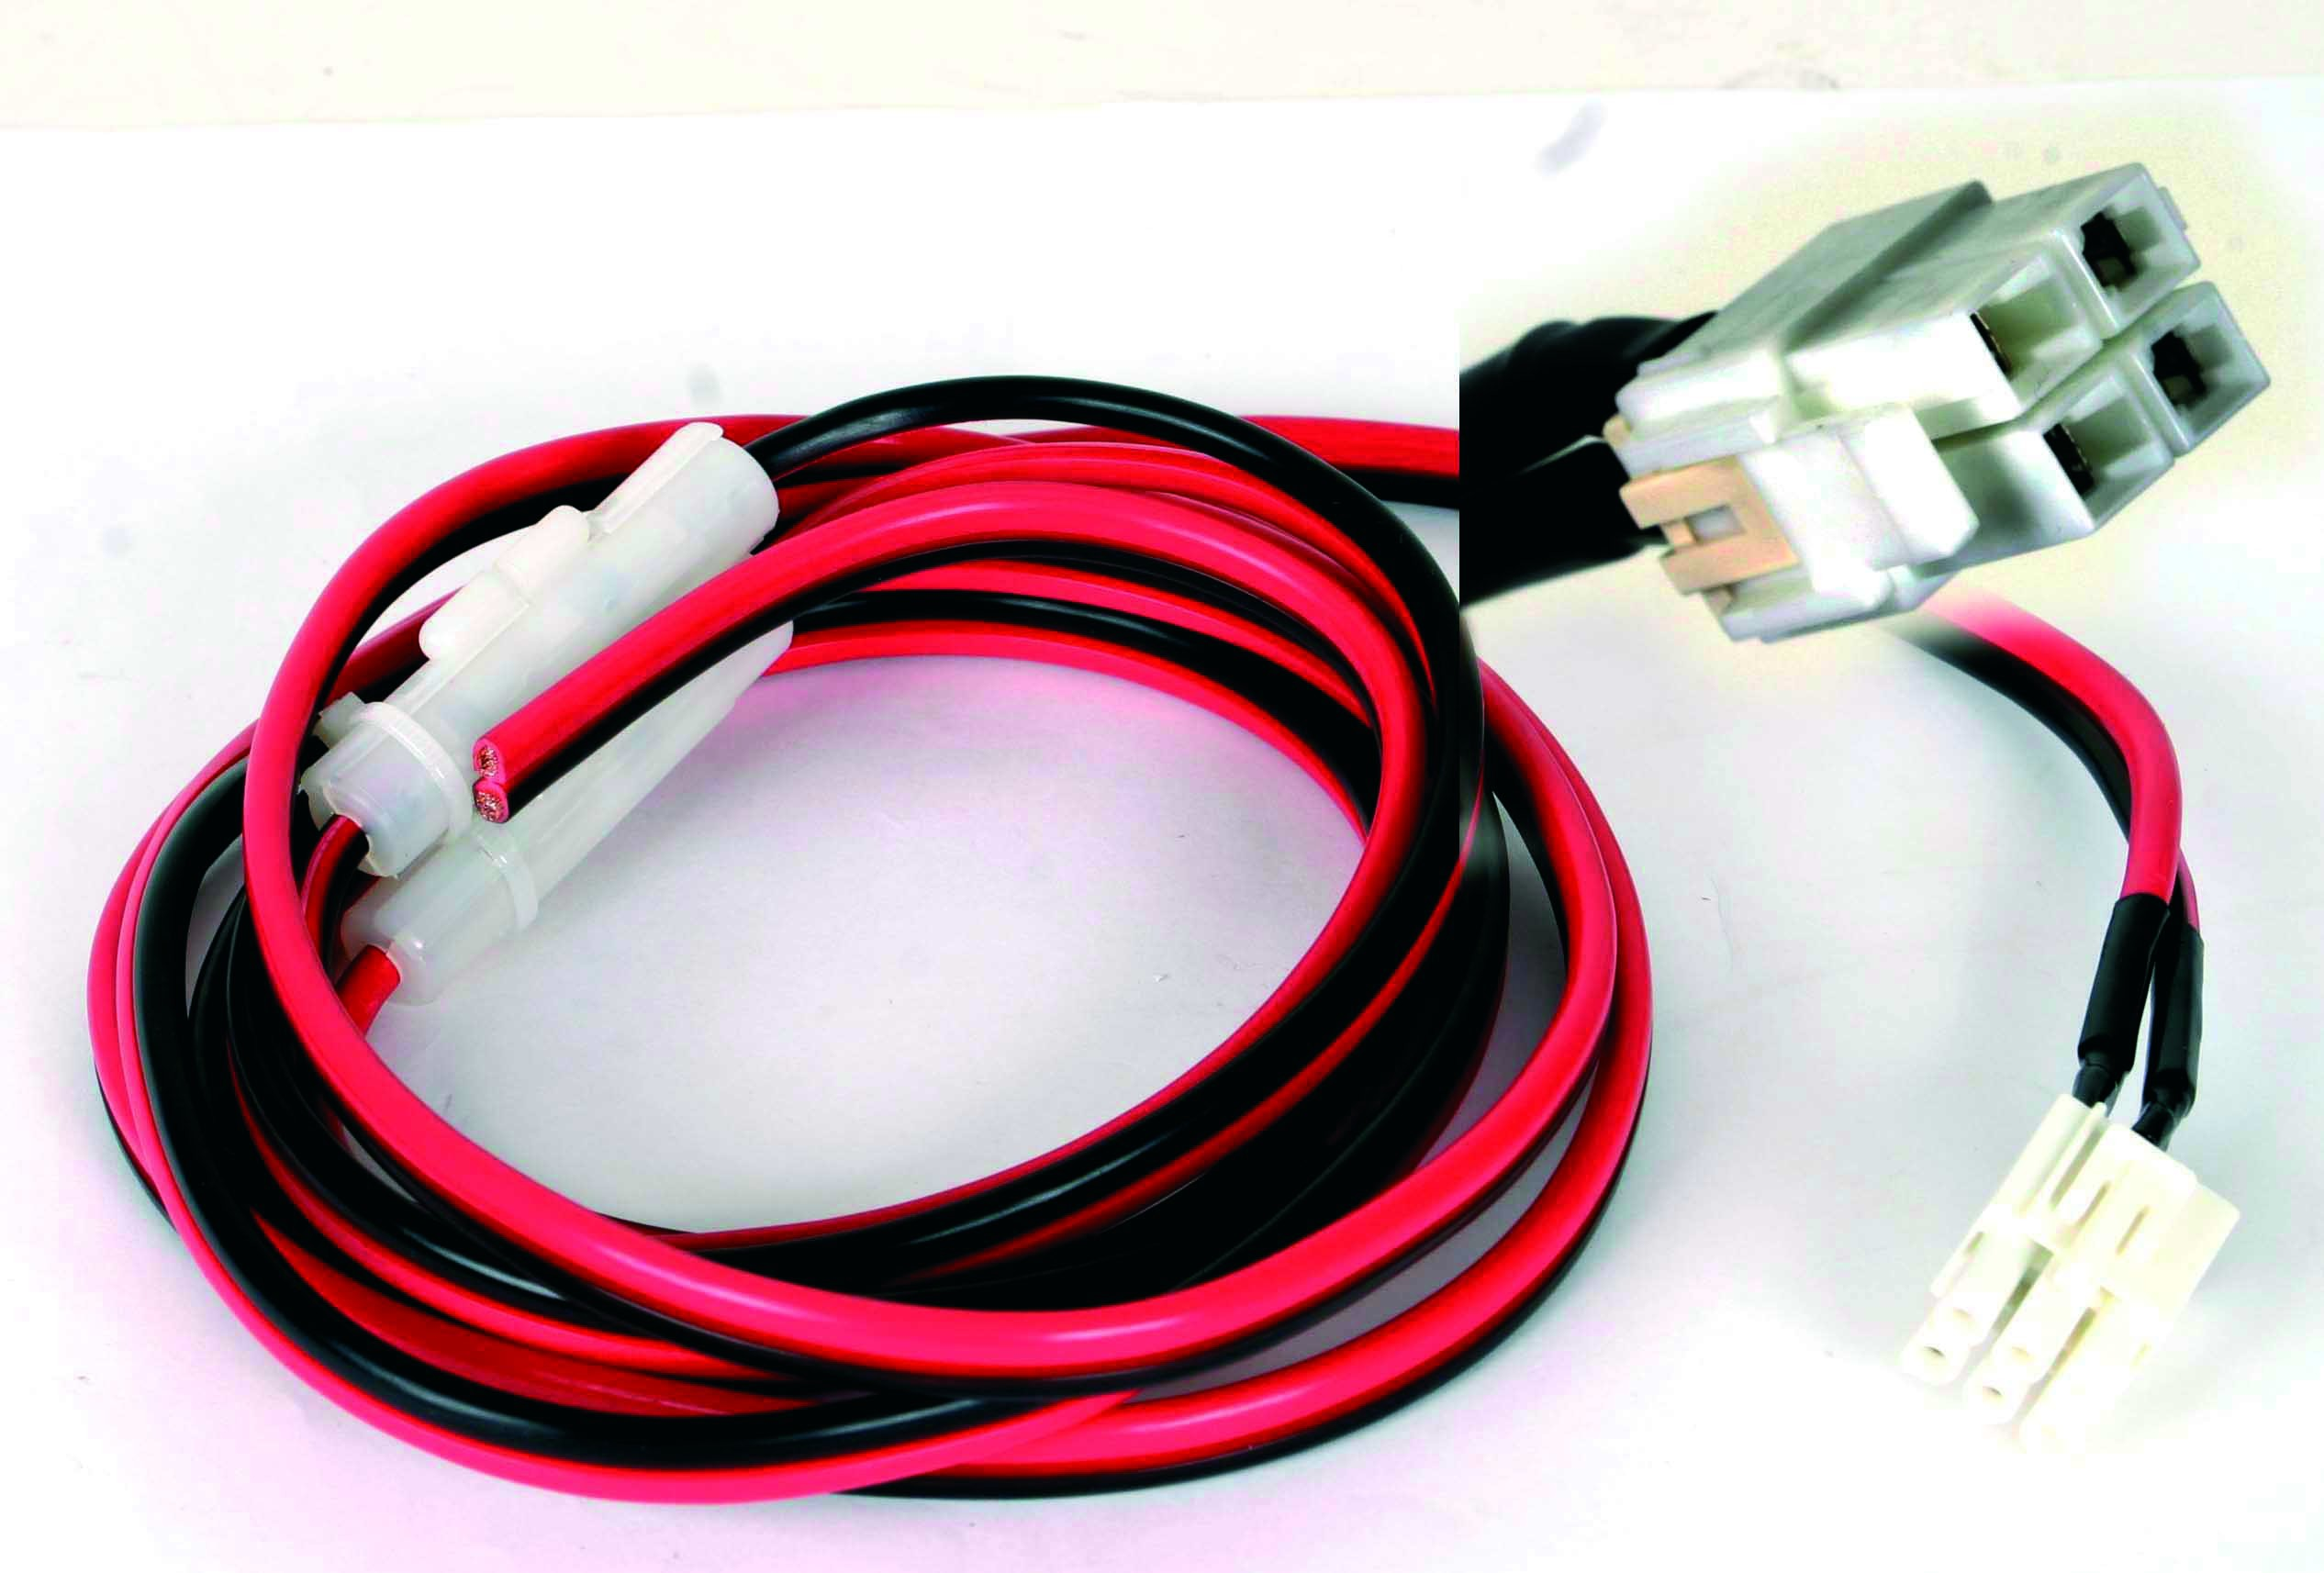 MFJ-5535M DC Power Cable for HF Radios with 6-Pin /& PowerPole Connectors